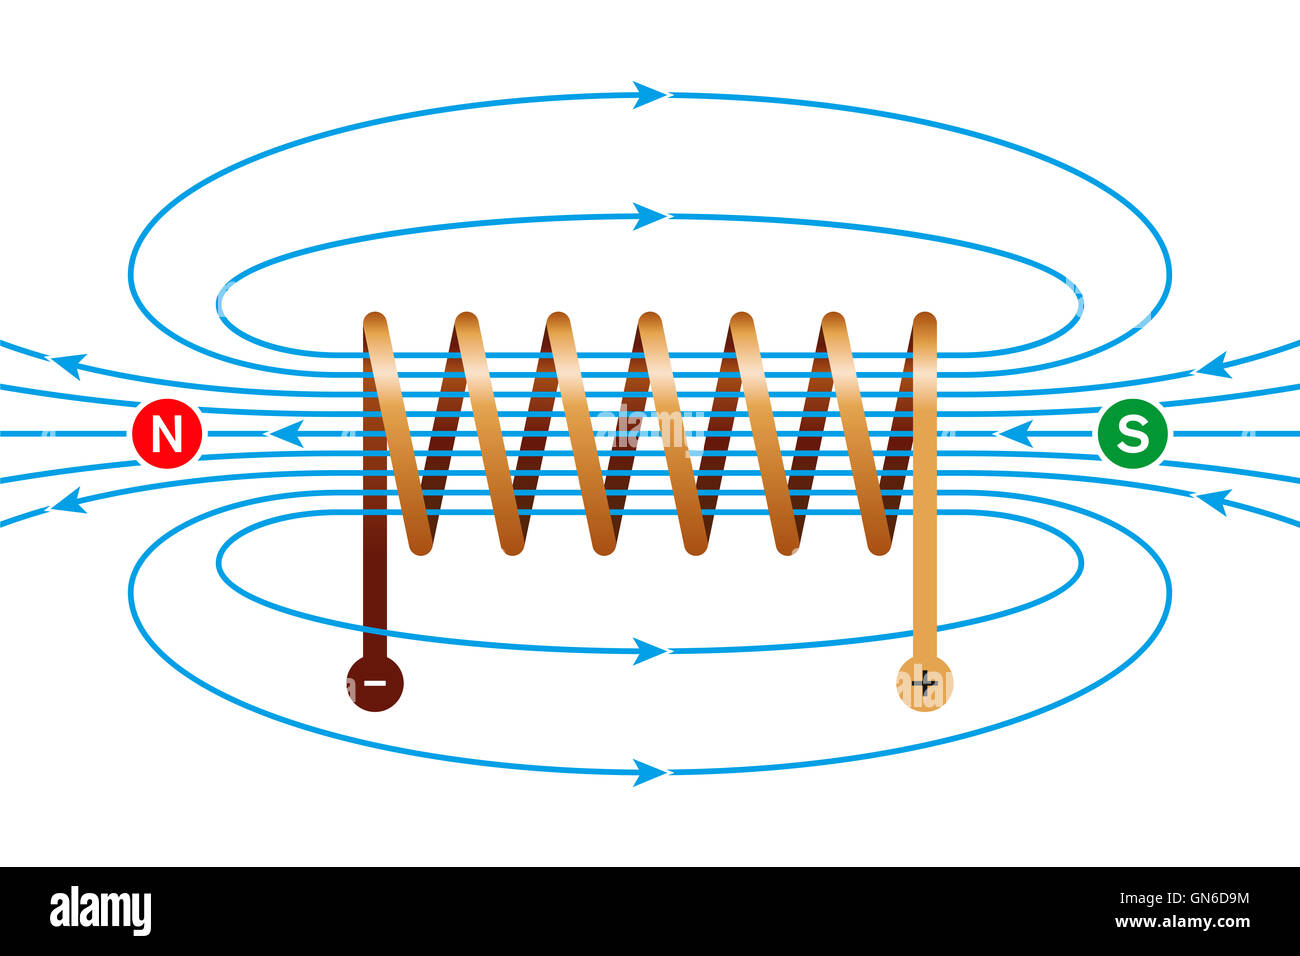 Magnetic Field Coil Stockfotos & Magnetic Field Coil Bilder - Alamy